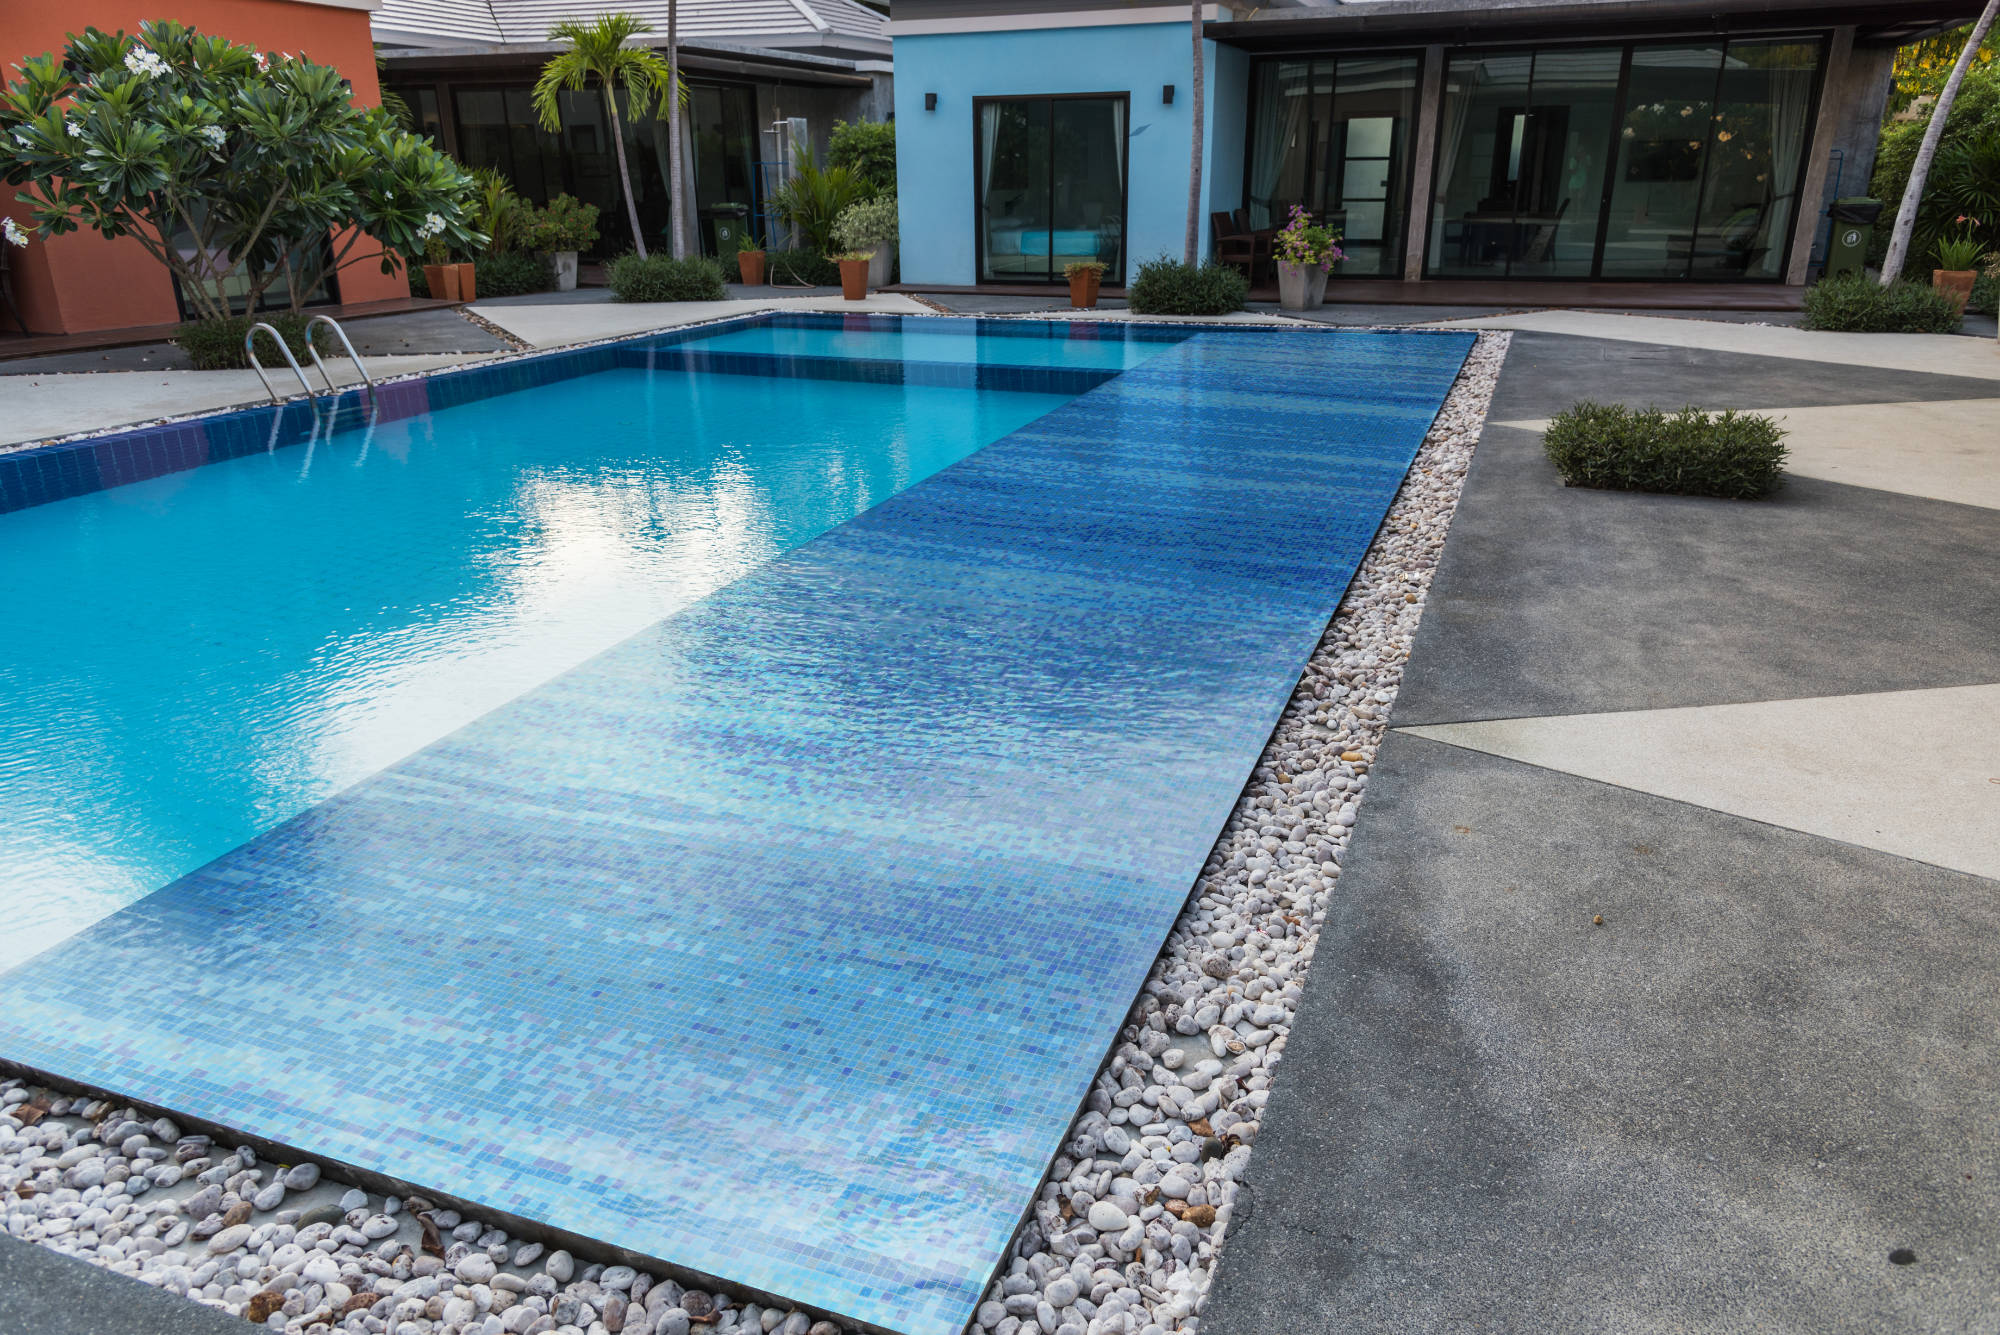 Waterflow lake pool tile mosaic